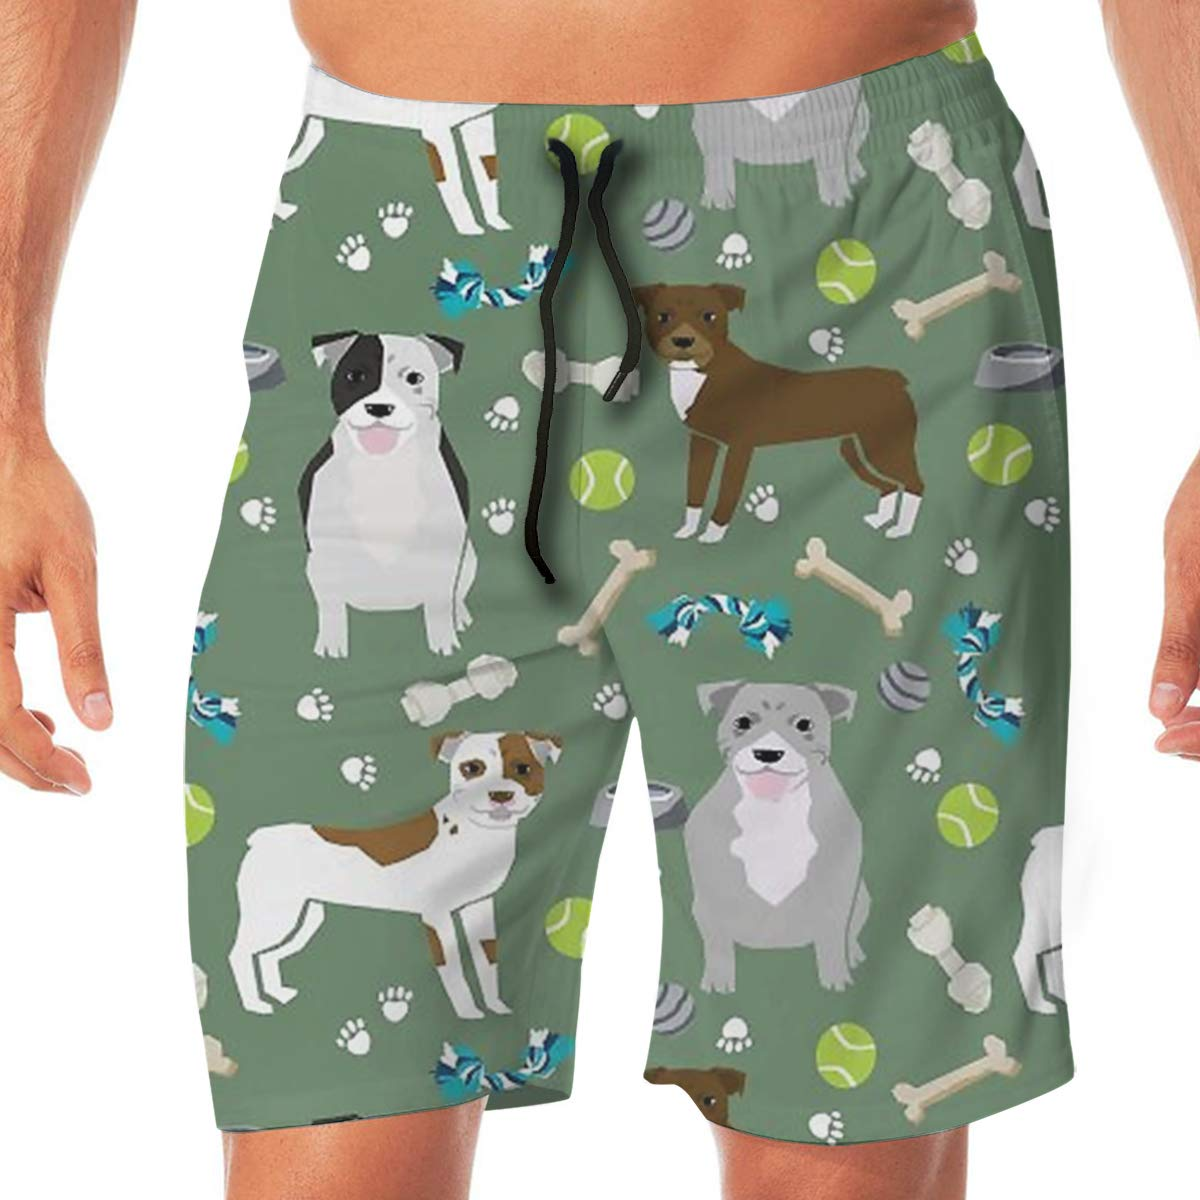 TR2YU7YT Dogs and Dog Toys Pitbulls Casual Mens Swim Trunks Quick Dry Printed Beach Shorts Summer Boardshorts Bathing Suits with Drawstring